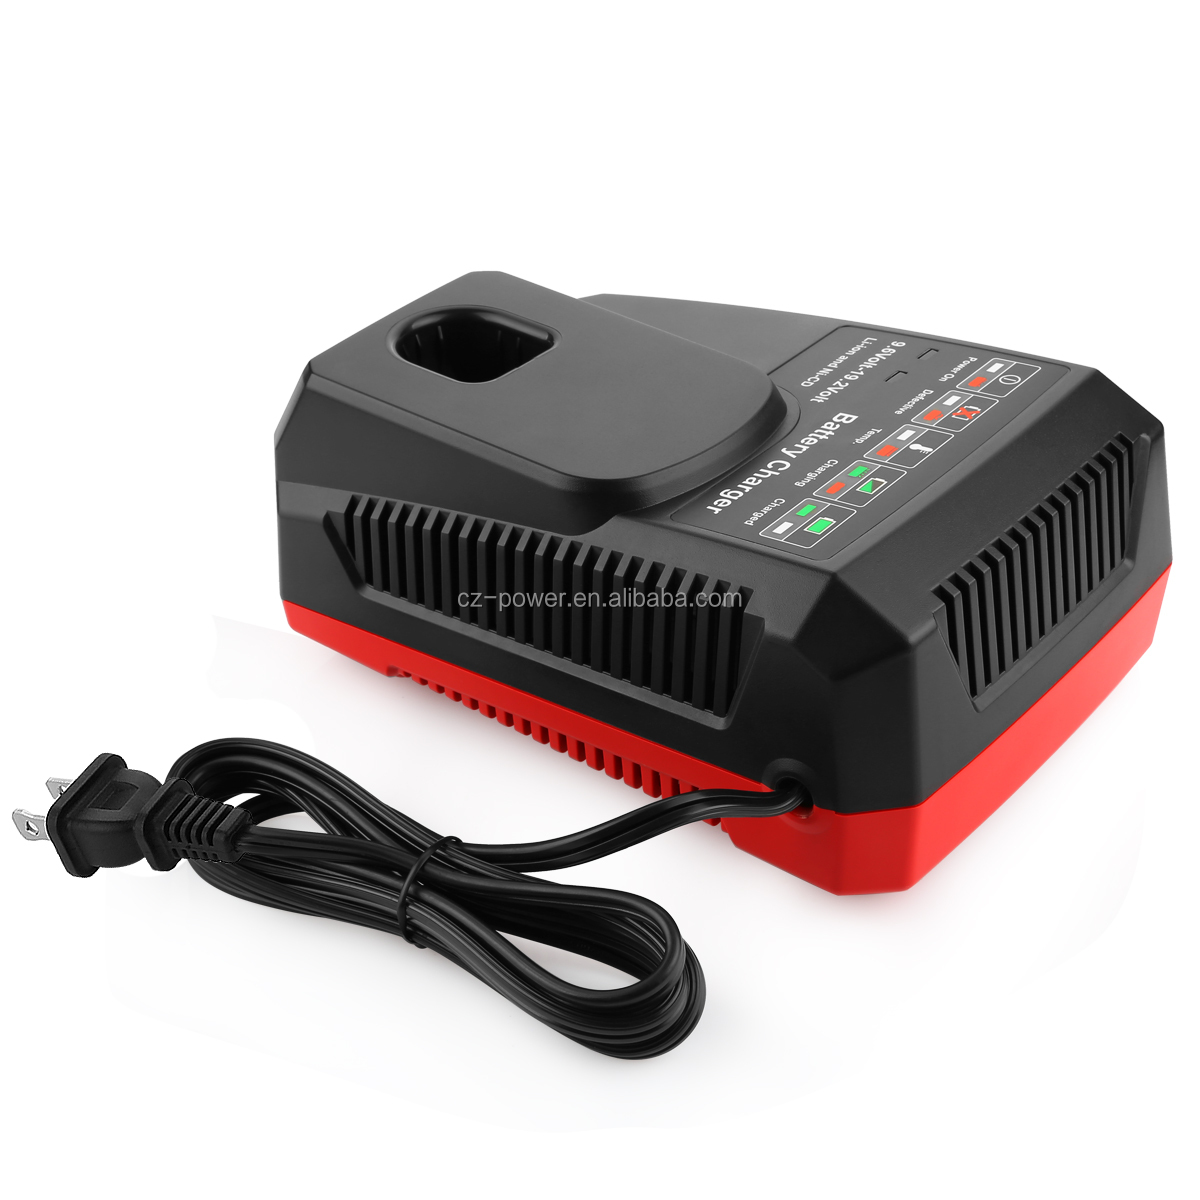 Quick Ni-Cd & Lithium-Ion 9.6V-19.2V Replacement Battery Charger for Craftsman 140152004 Power tool Battery